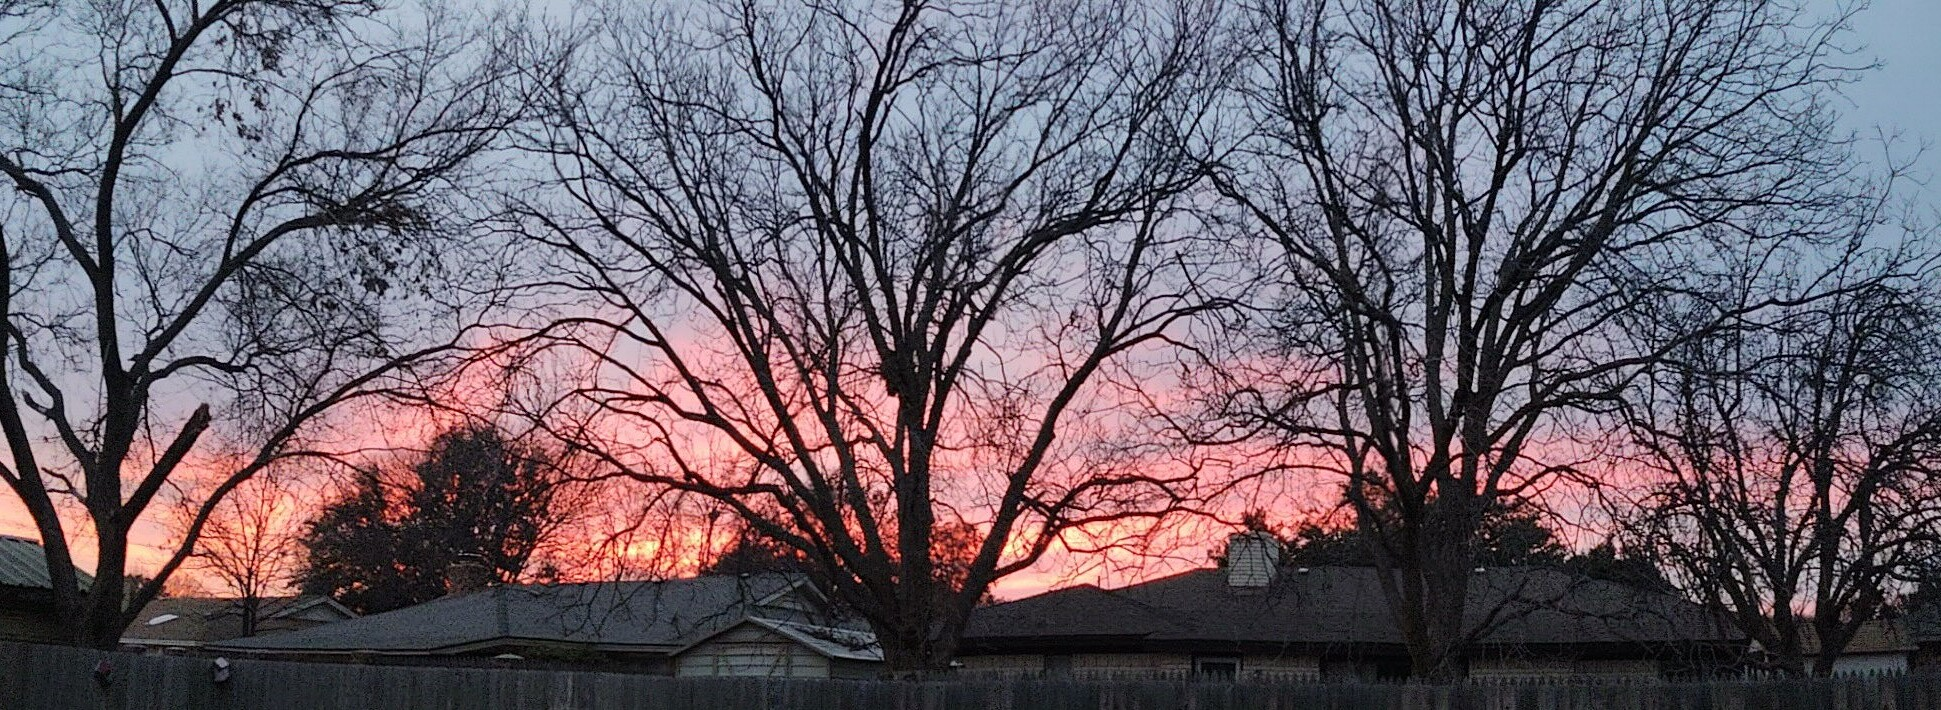 Picture of bare trees with red sky at sunset in the background. House rooftops and fence visible beneath.